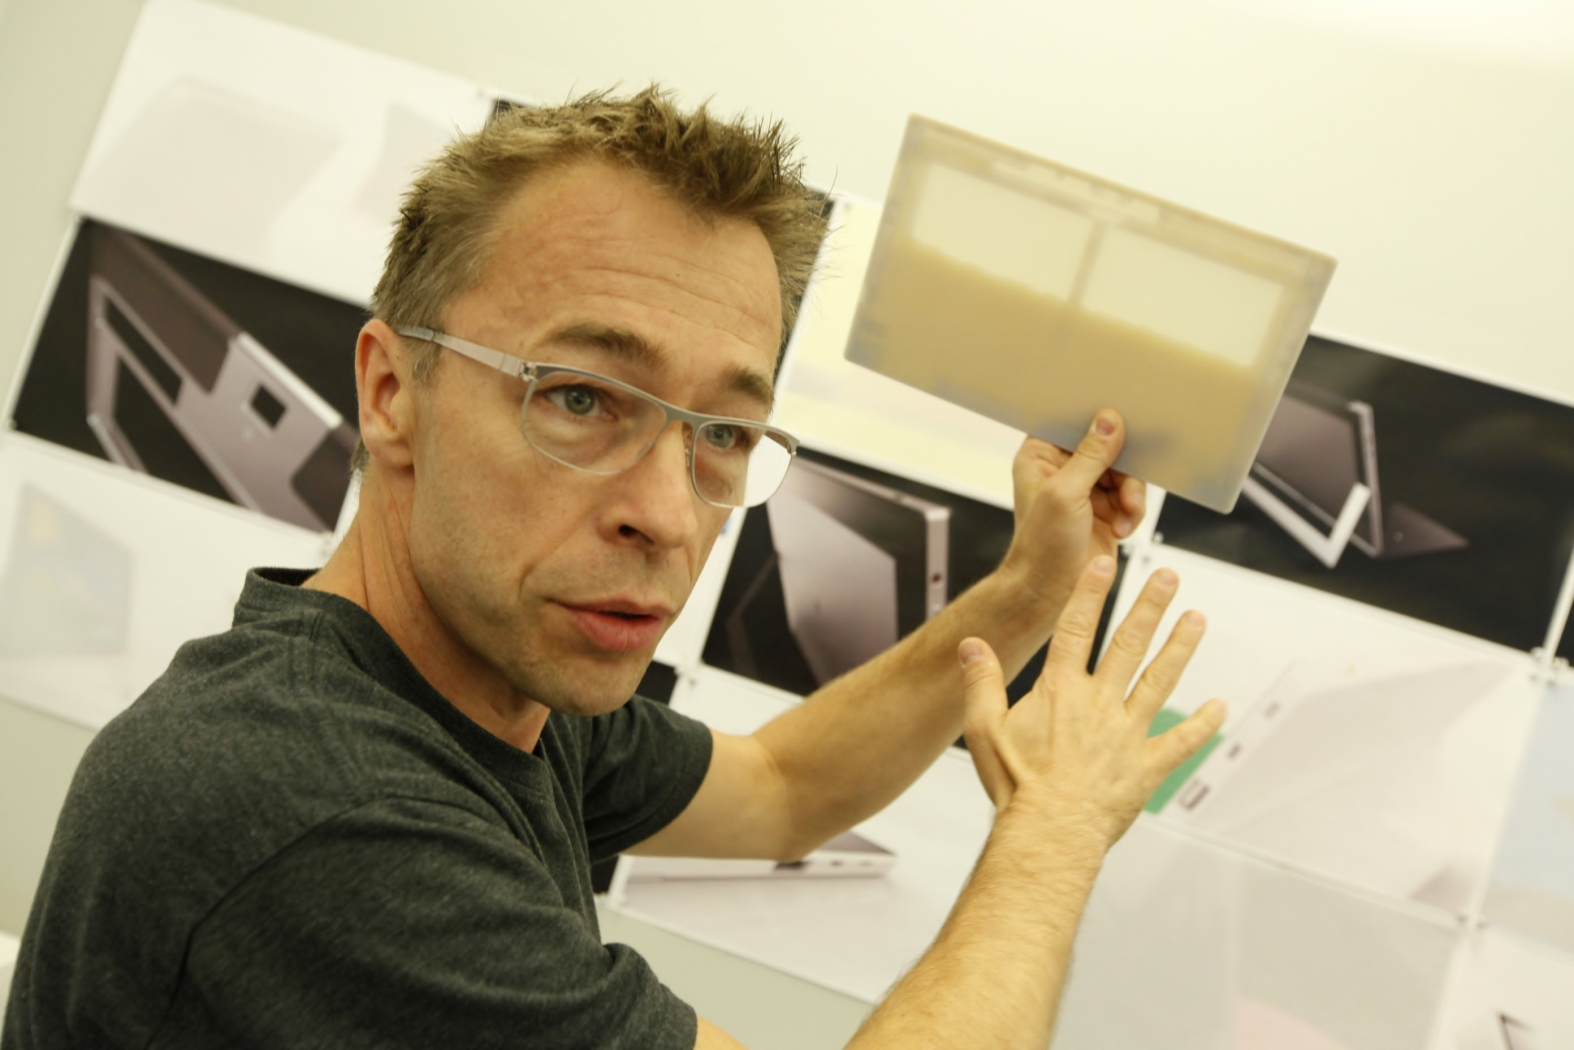 Q&A: Ralf Groene, on designing the Microsoft Surface